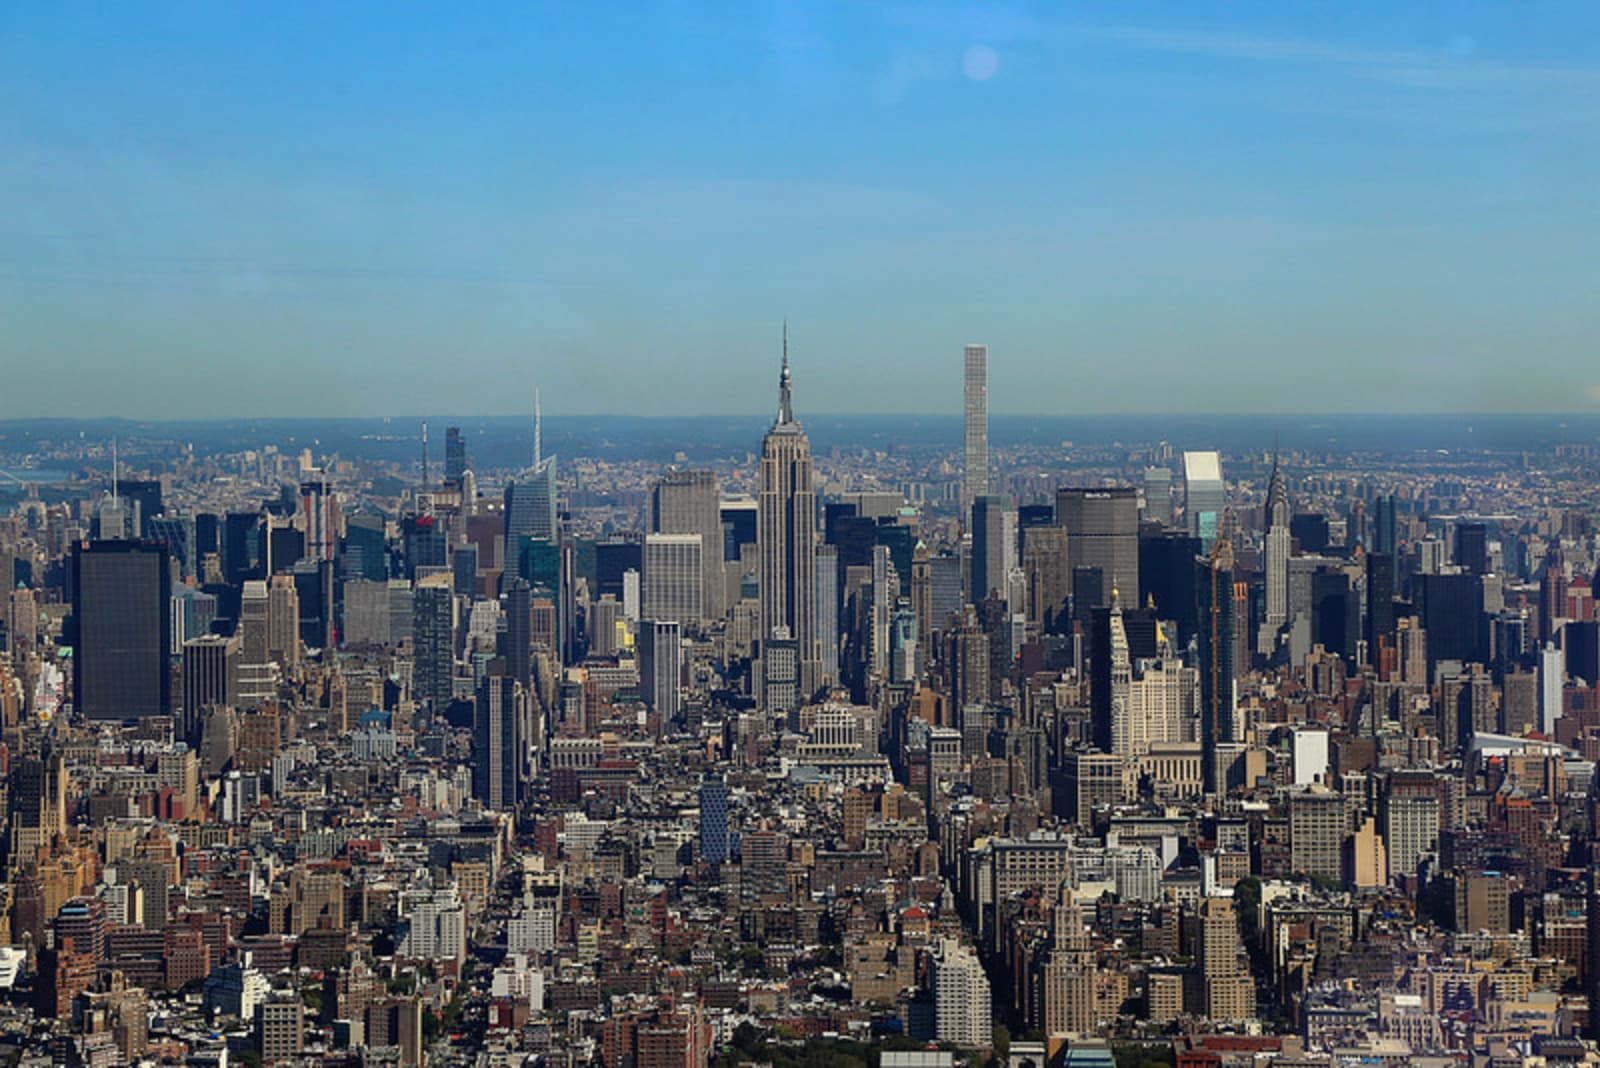 The view from the One World Trade Center Observatory